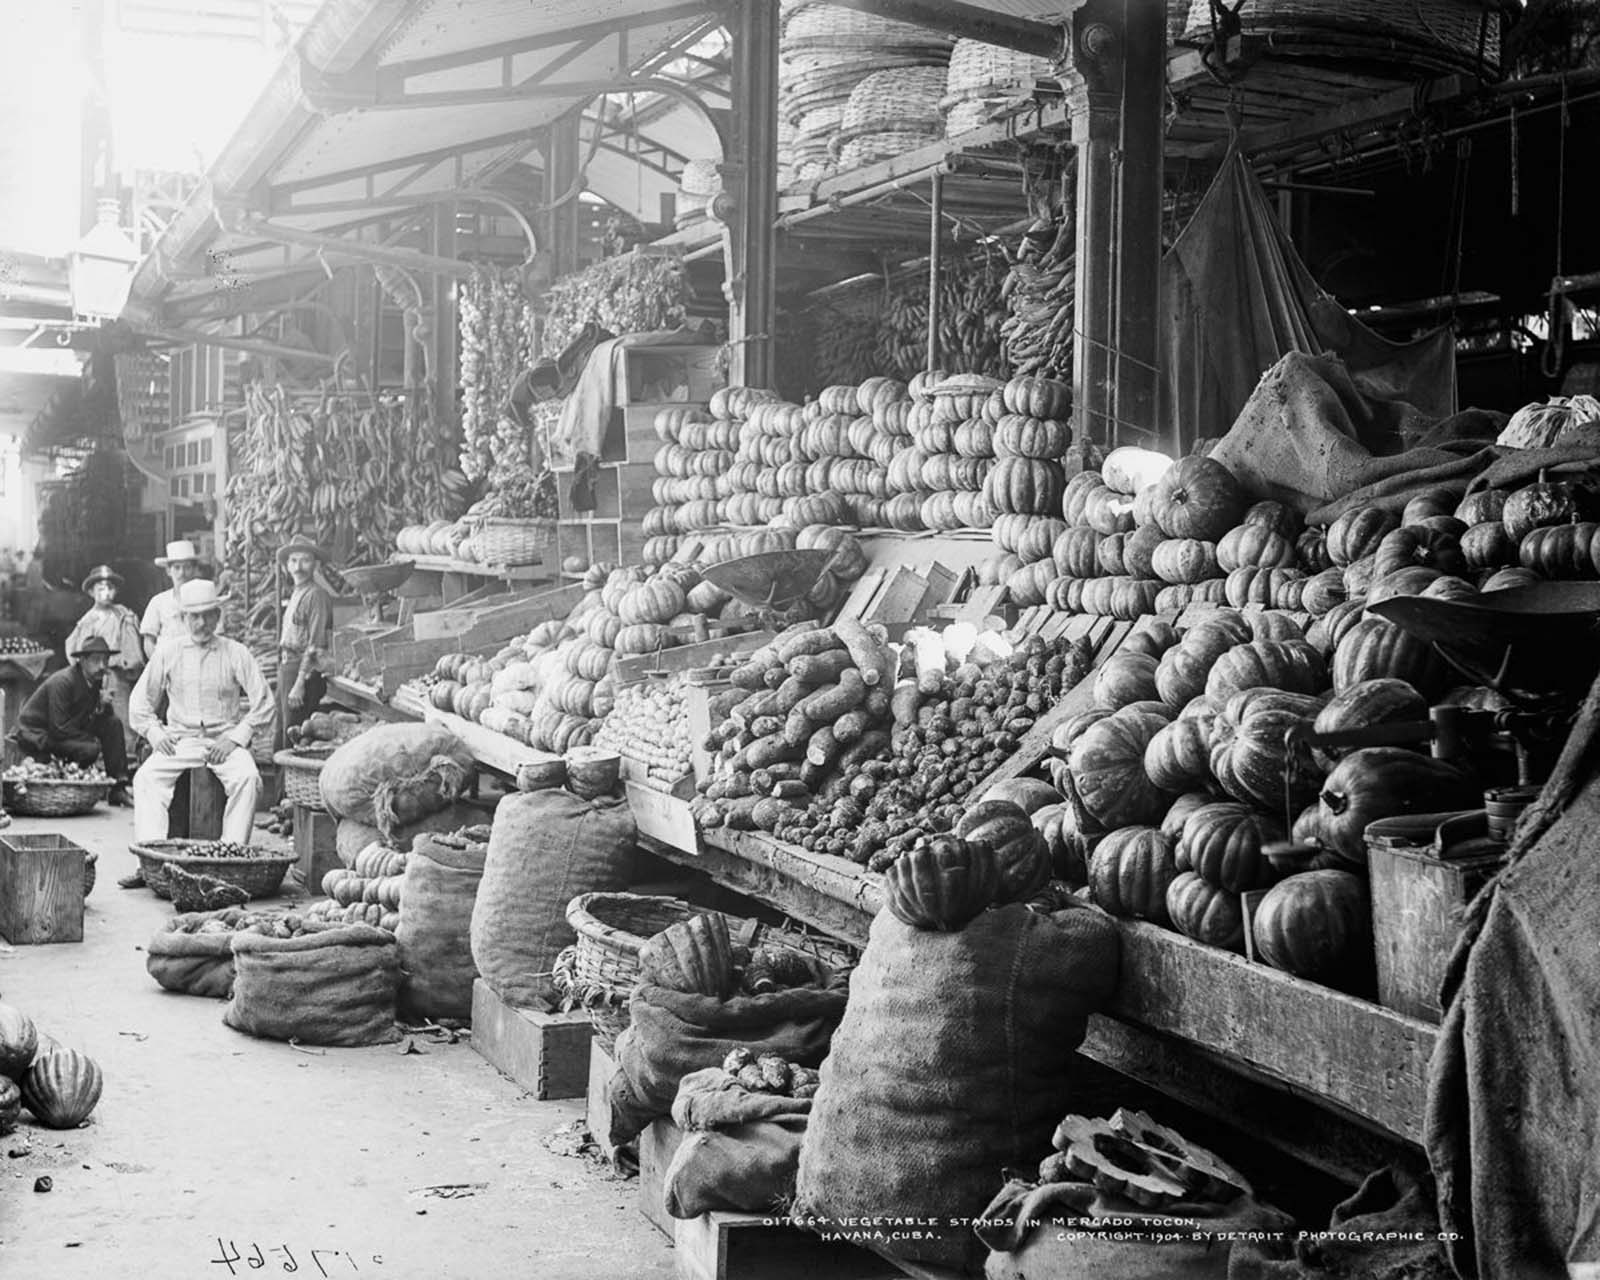 Vegetable stands in Mercado Tocon. 1904.